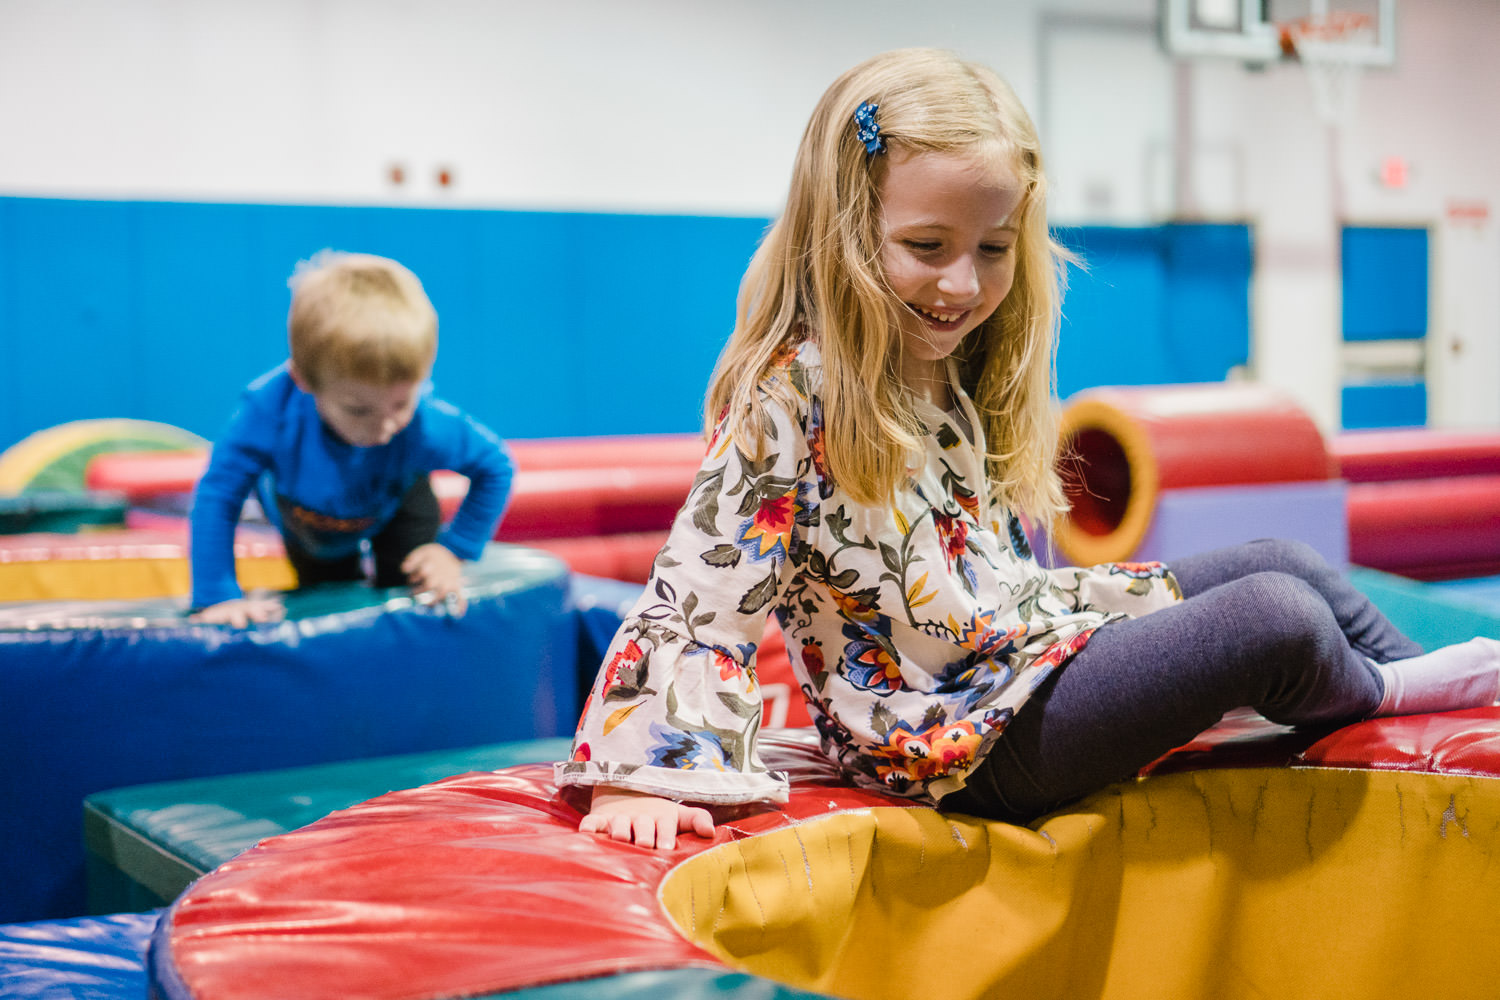 Kids play in a tumble gym.